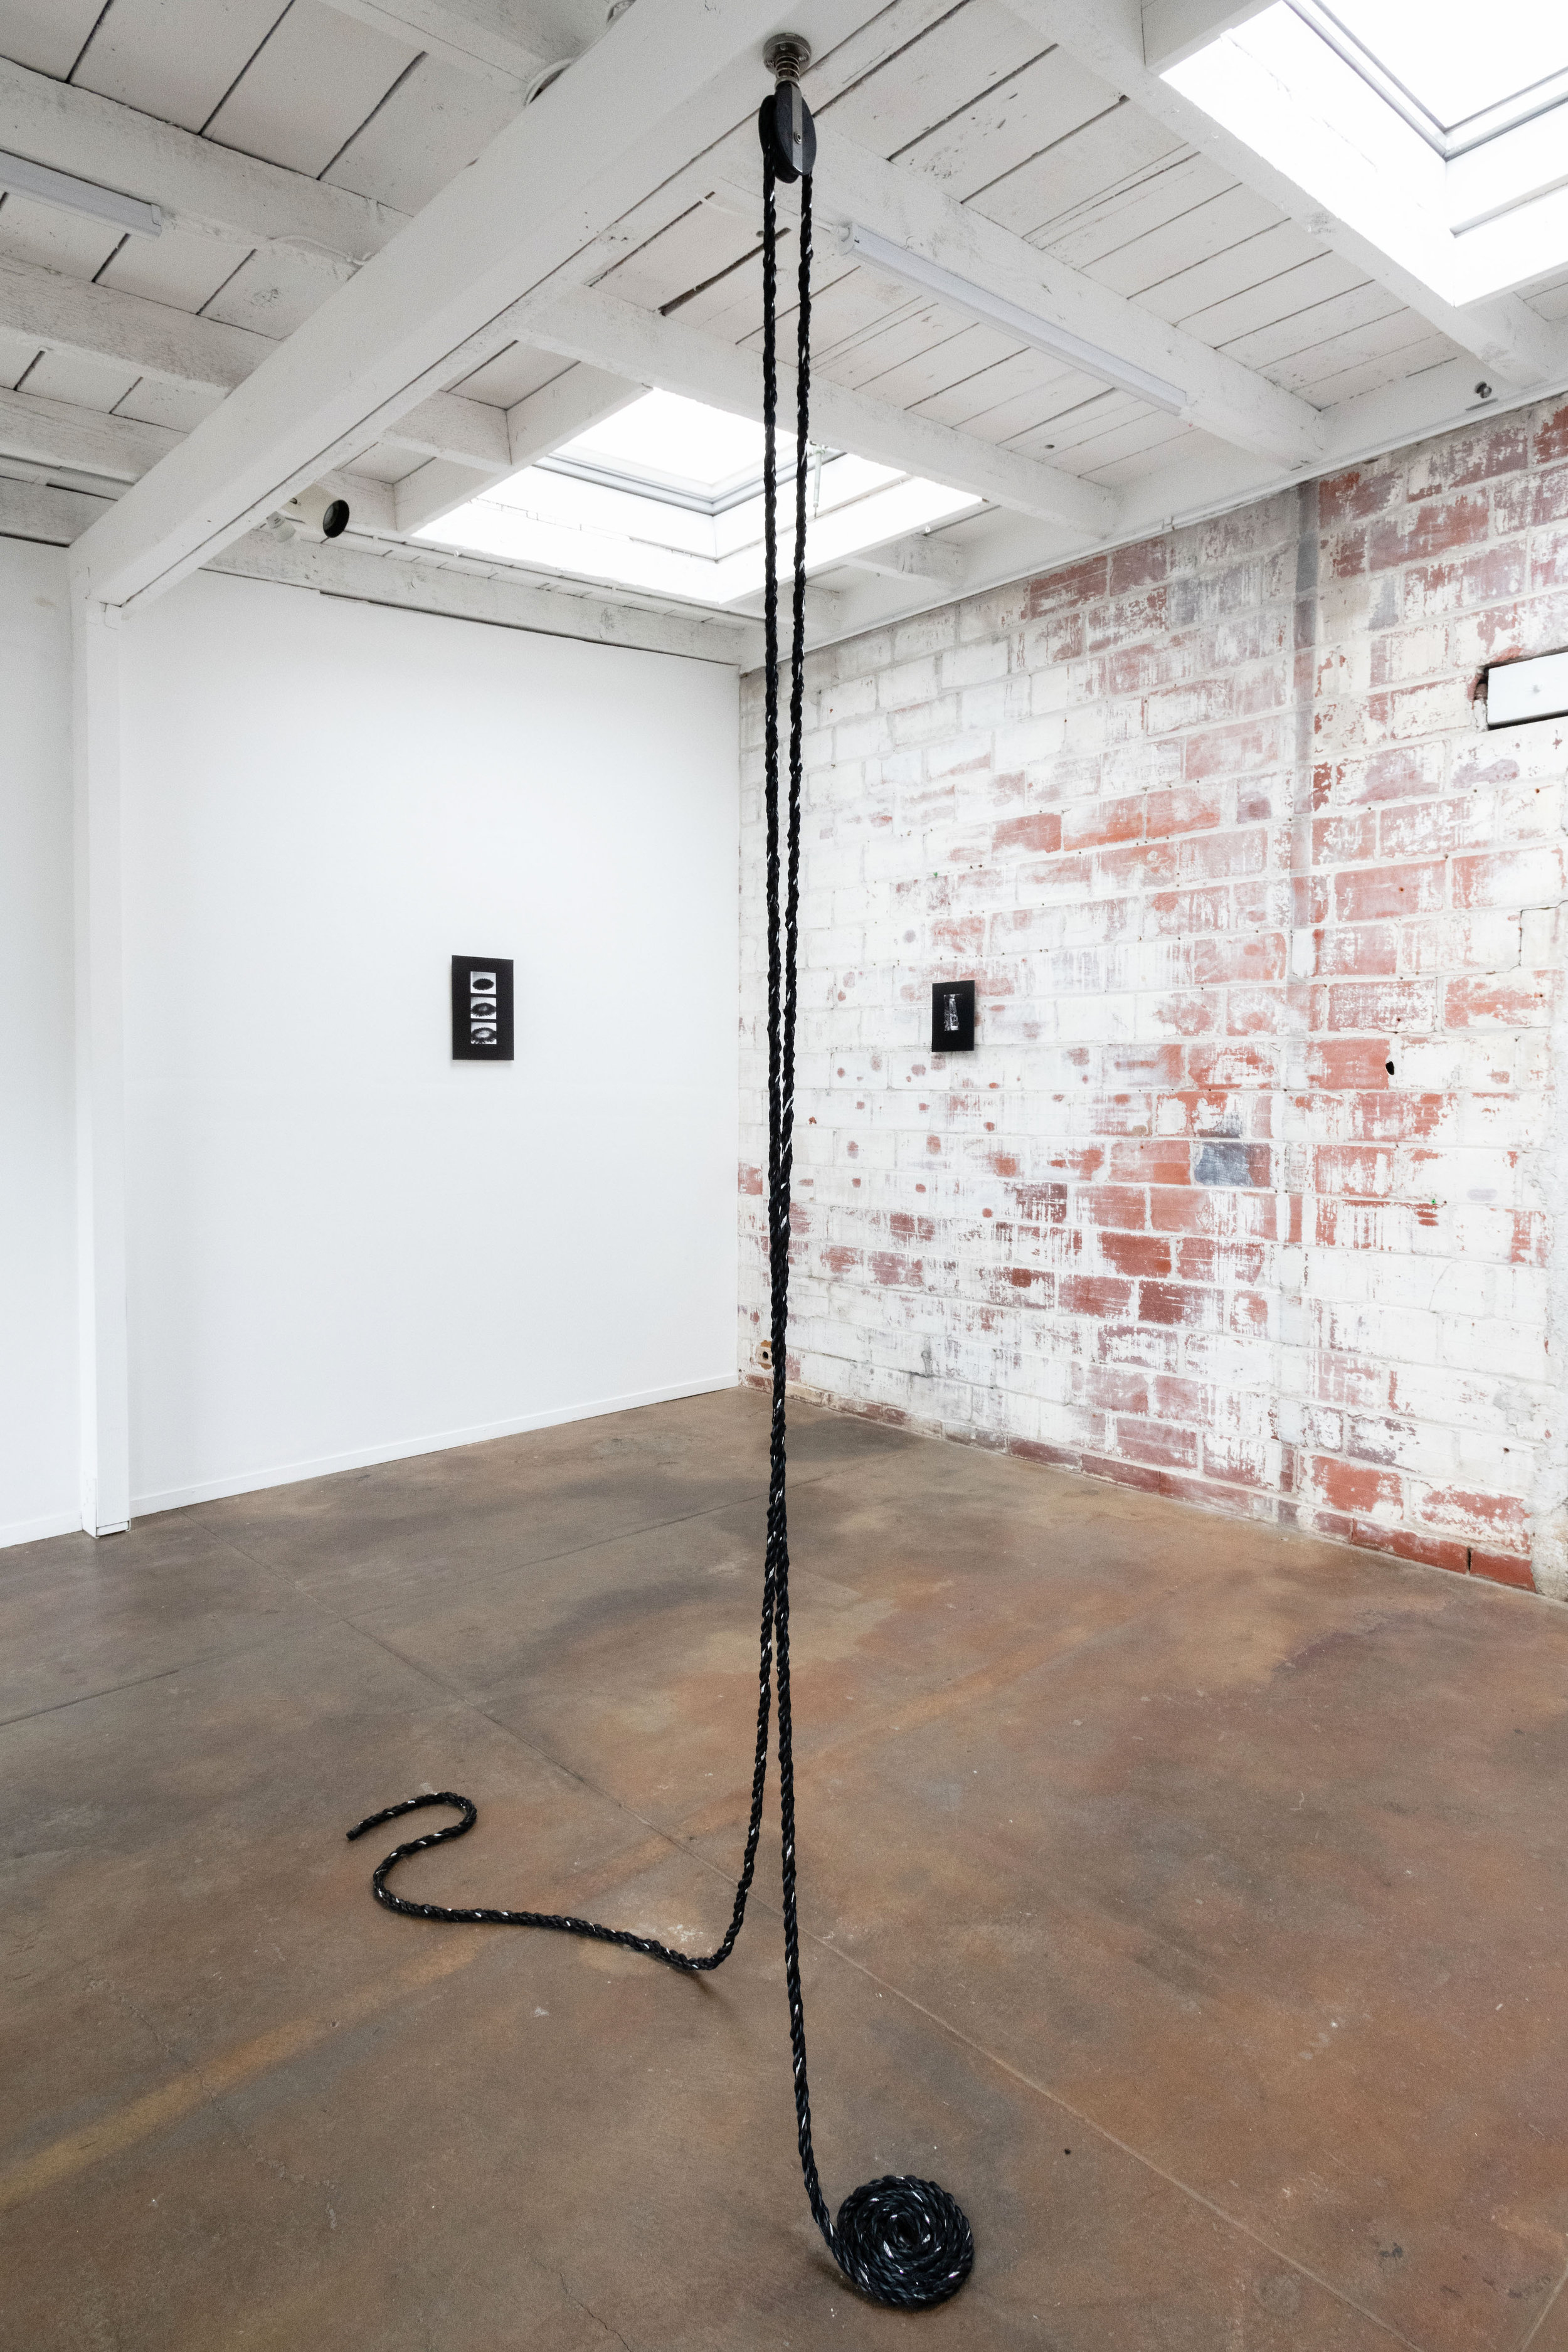 Dionne Lee,  Running, rigging, wading, 2019.  Exhibition view.